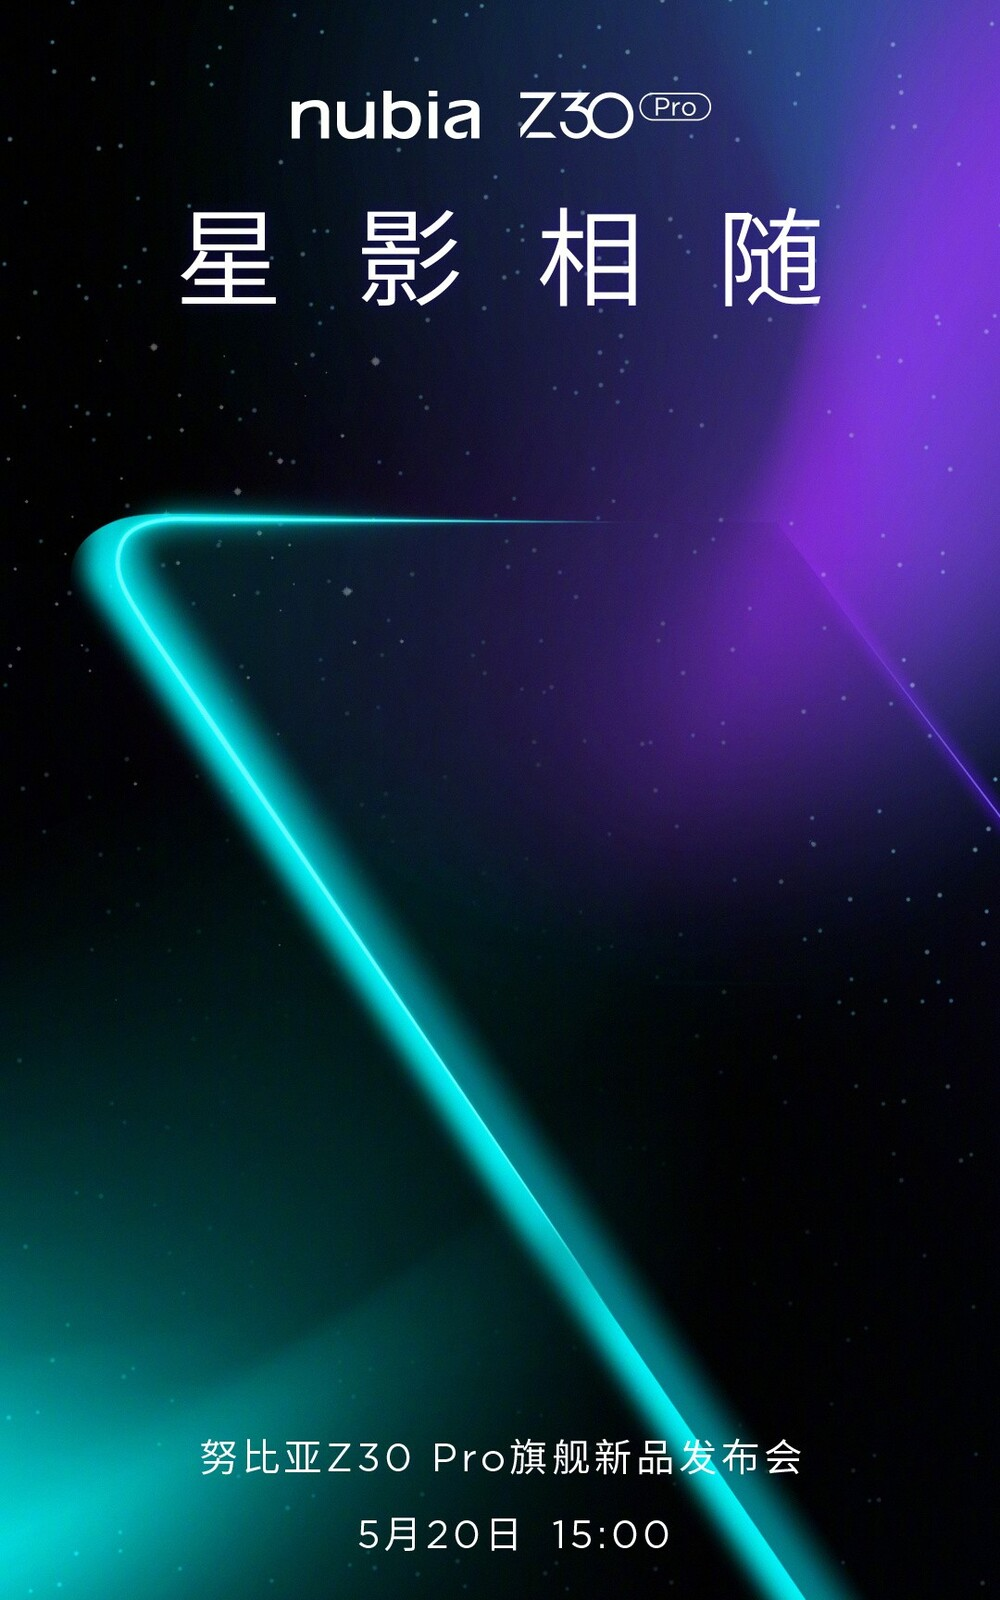 The first official poster of the Nubia Z30 Pro